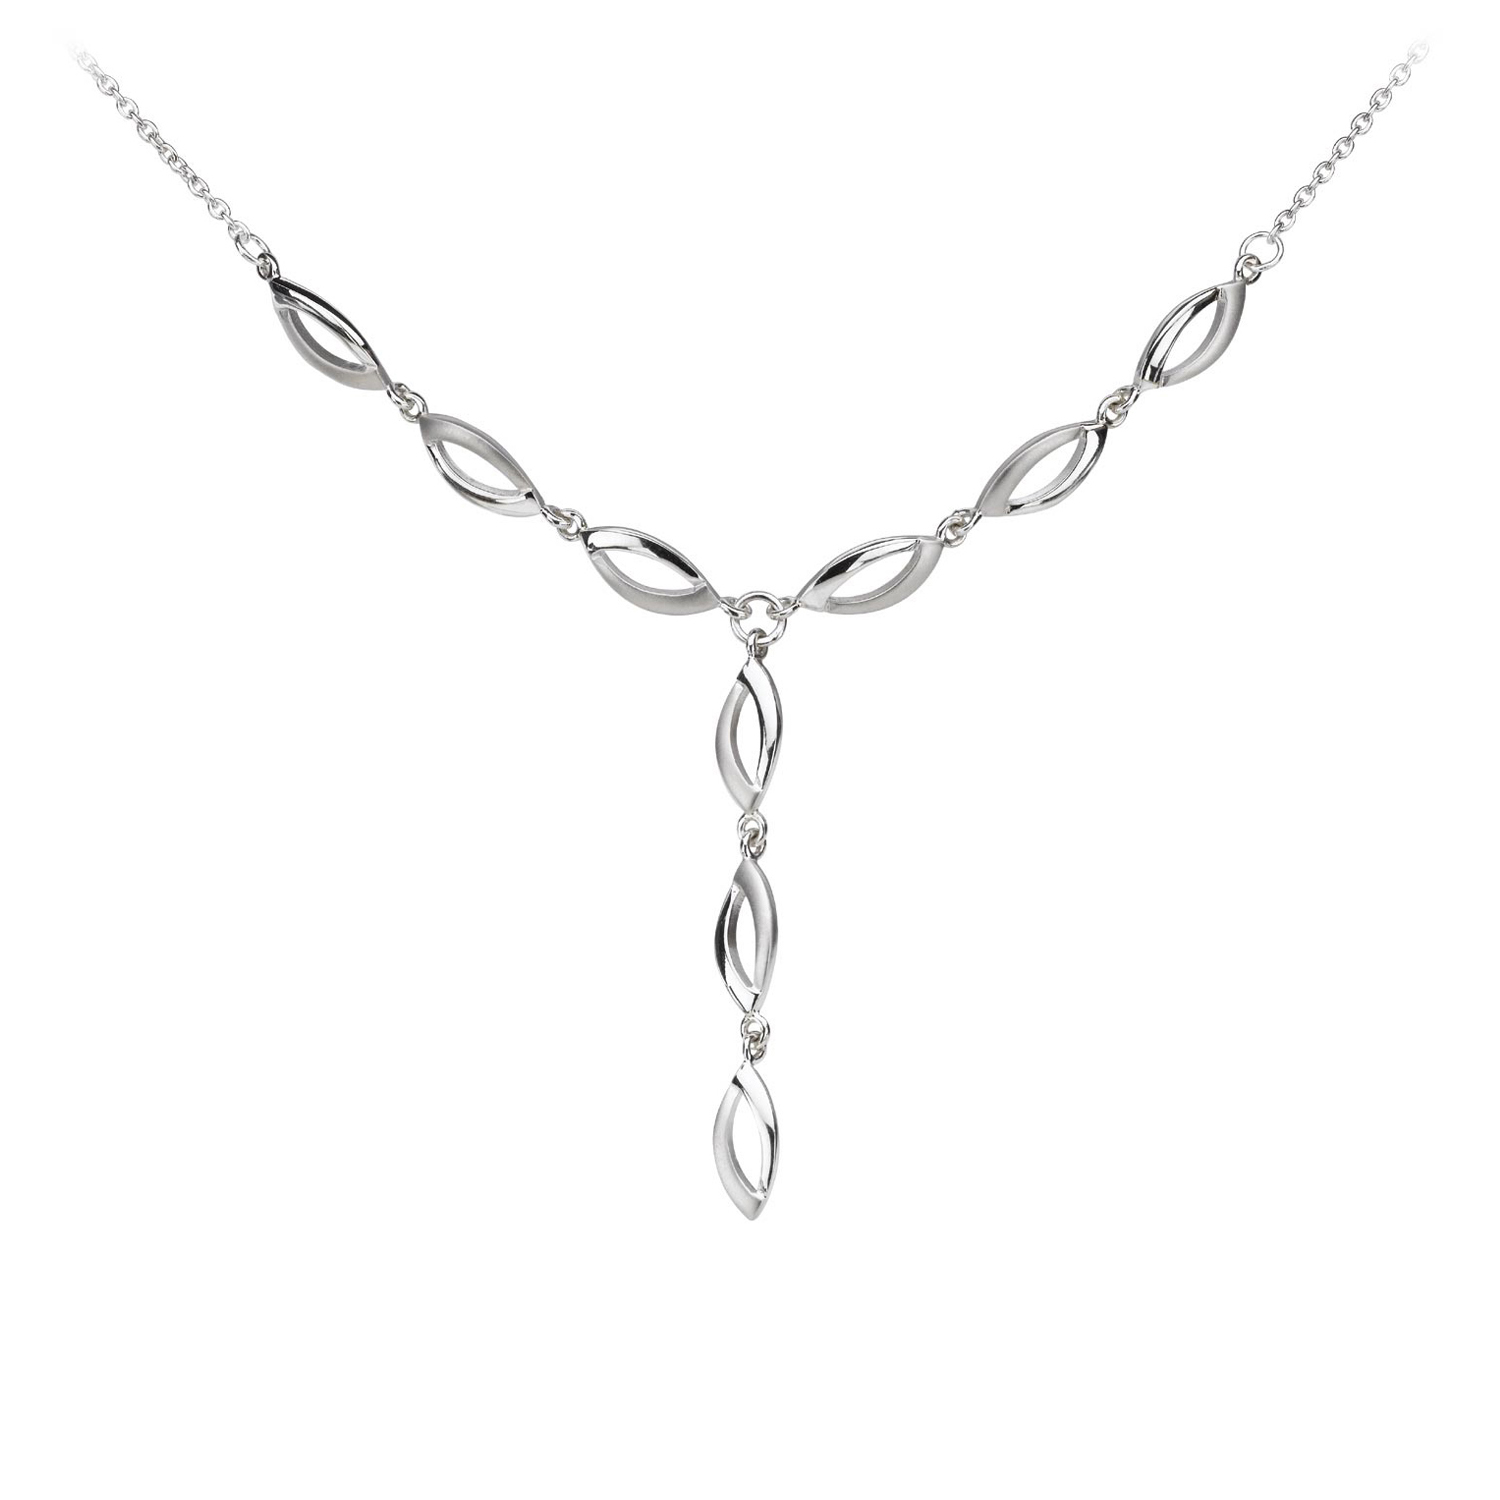 castle-rocks-and-jewelry-silver-loop-necklace-kit-heath